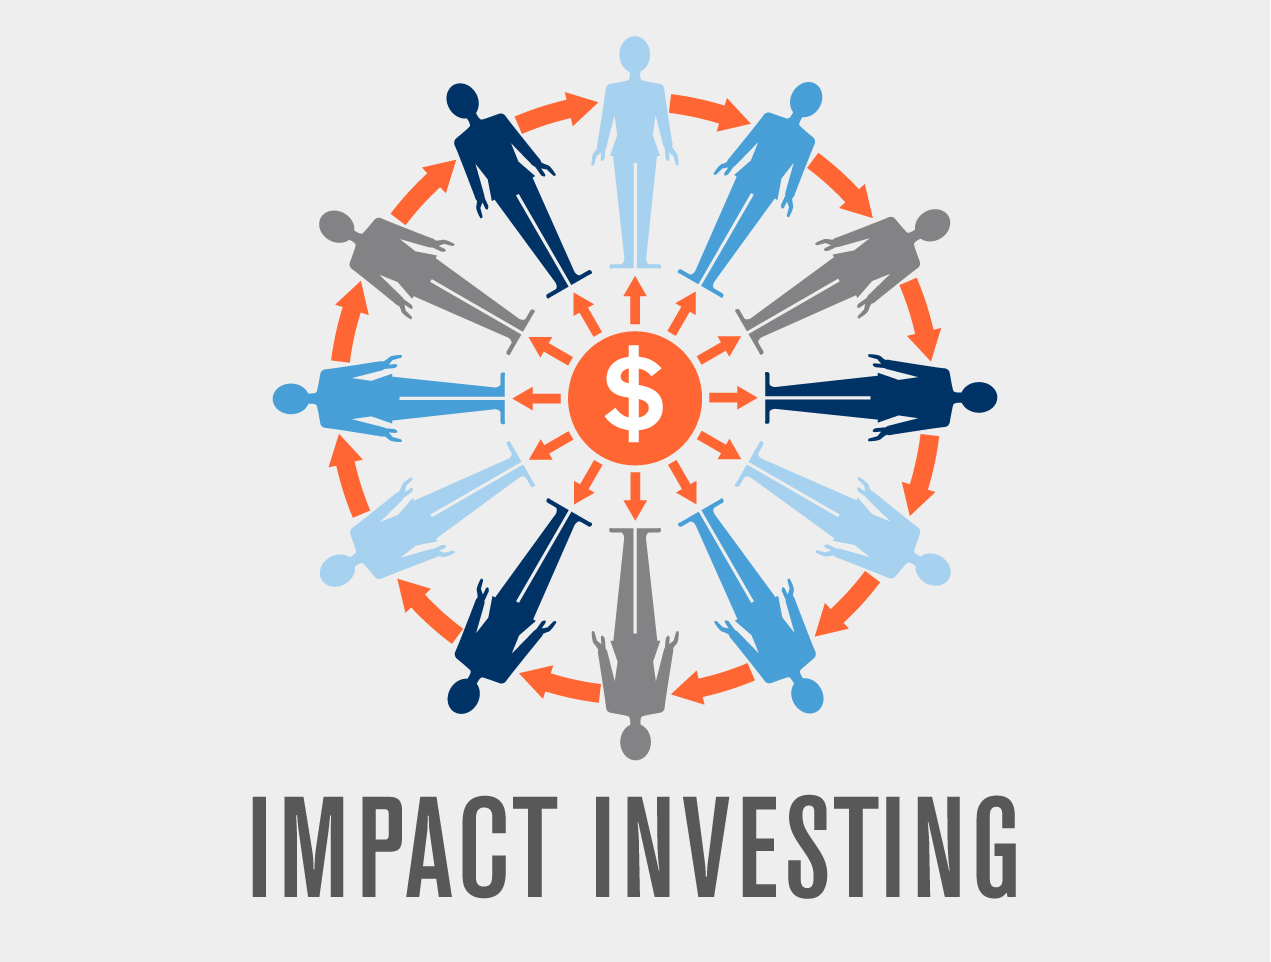 Impact and Social Investing